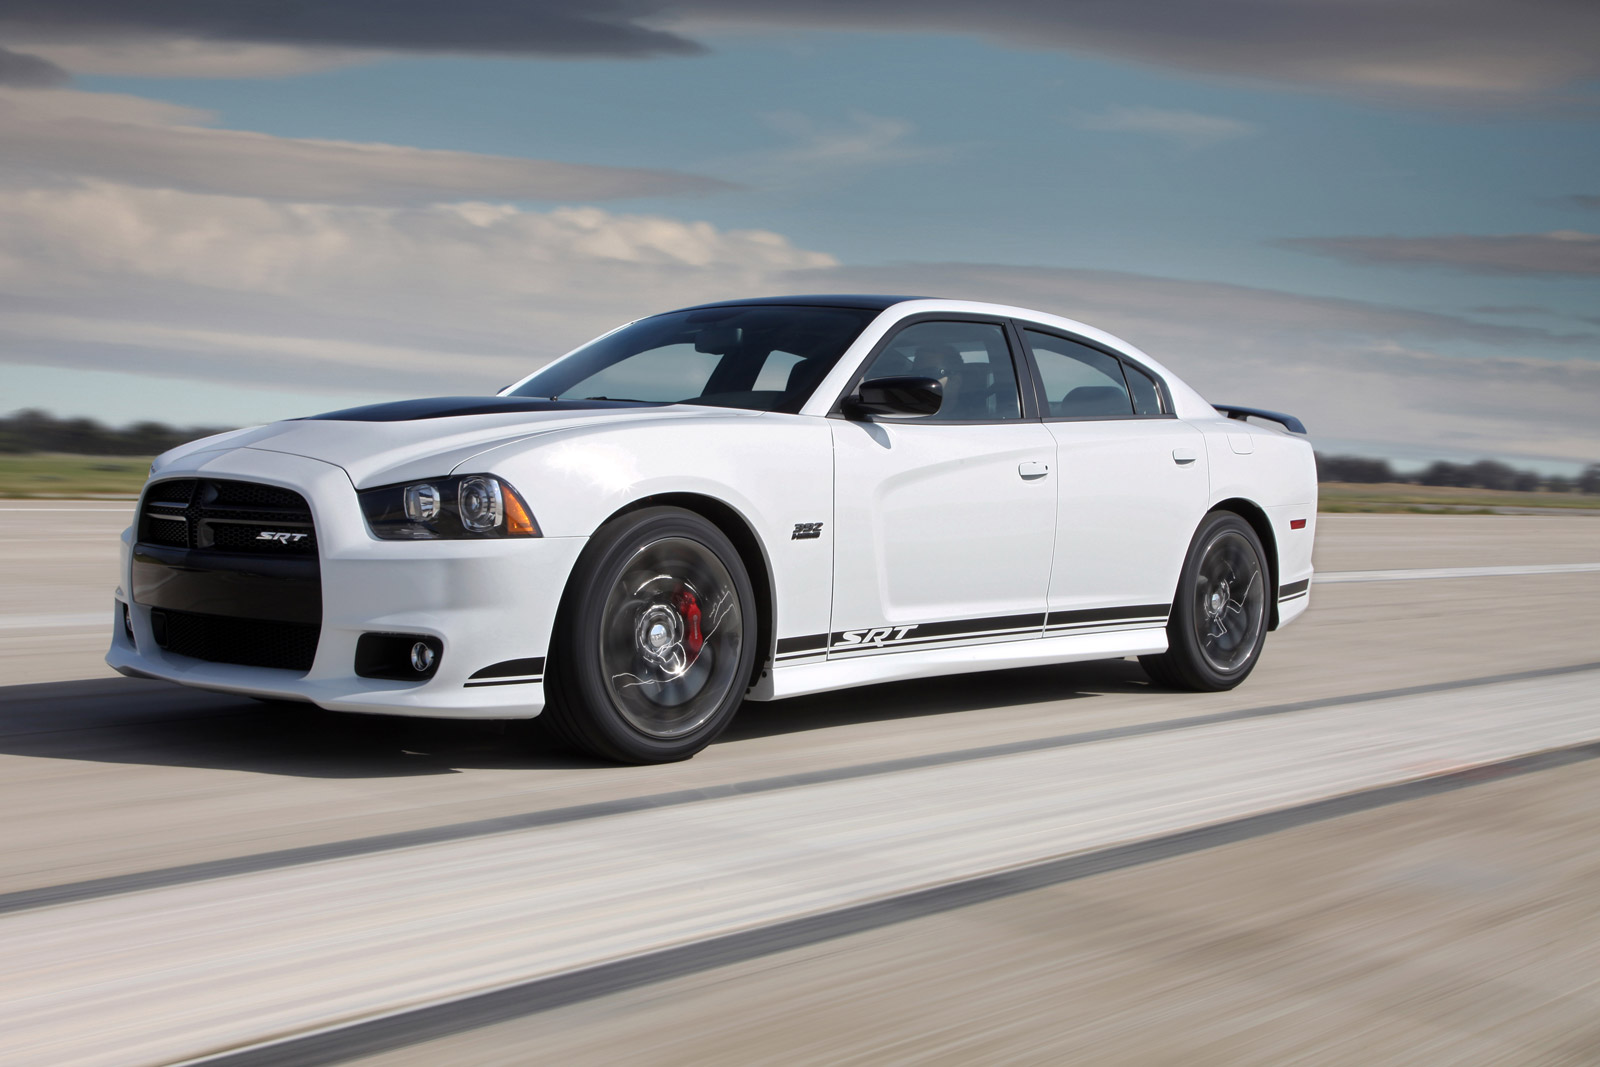 2013 dodge charger performance review the car connection - Dodge Charger 2013 Rt